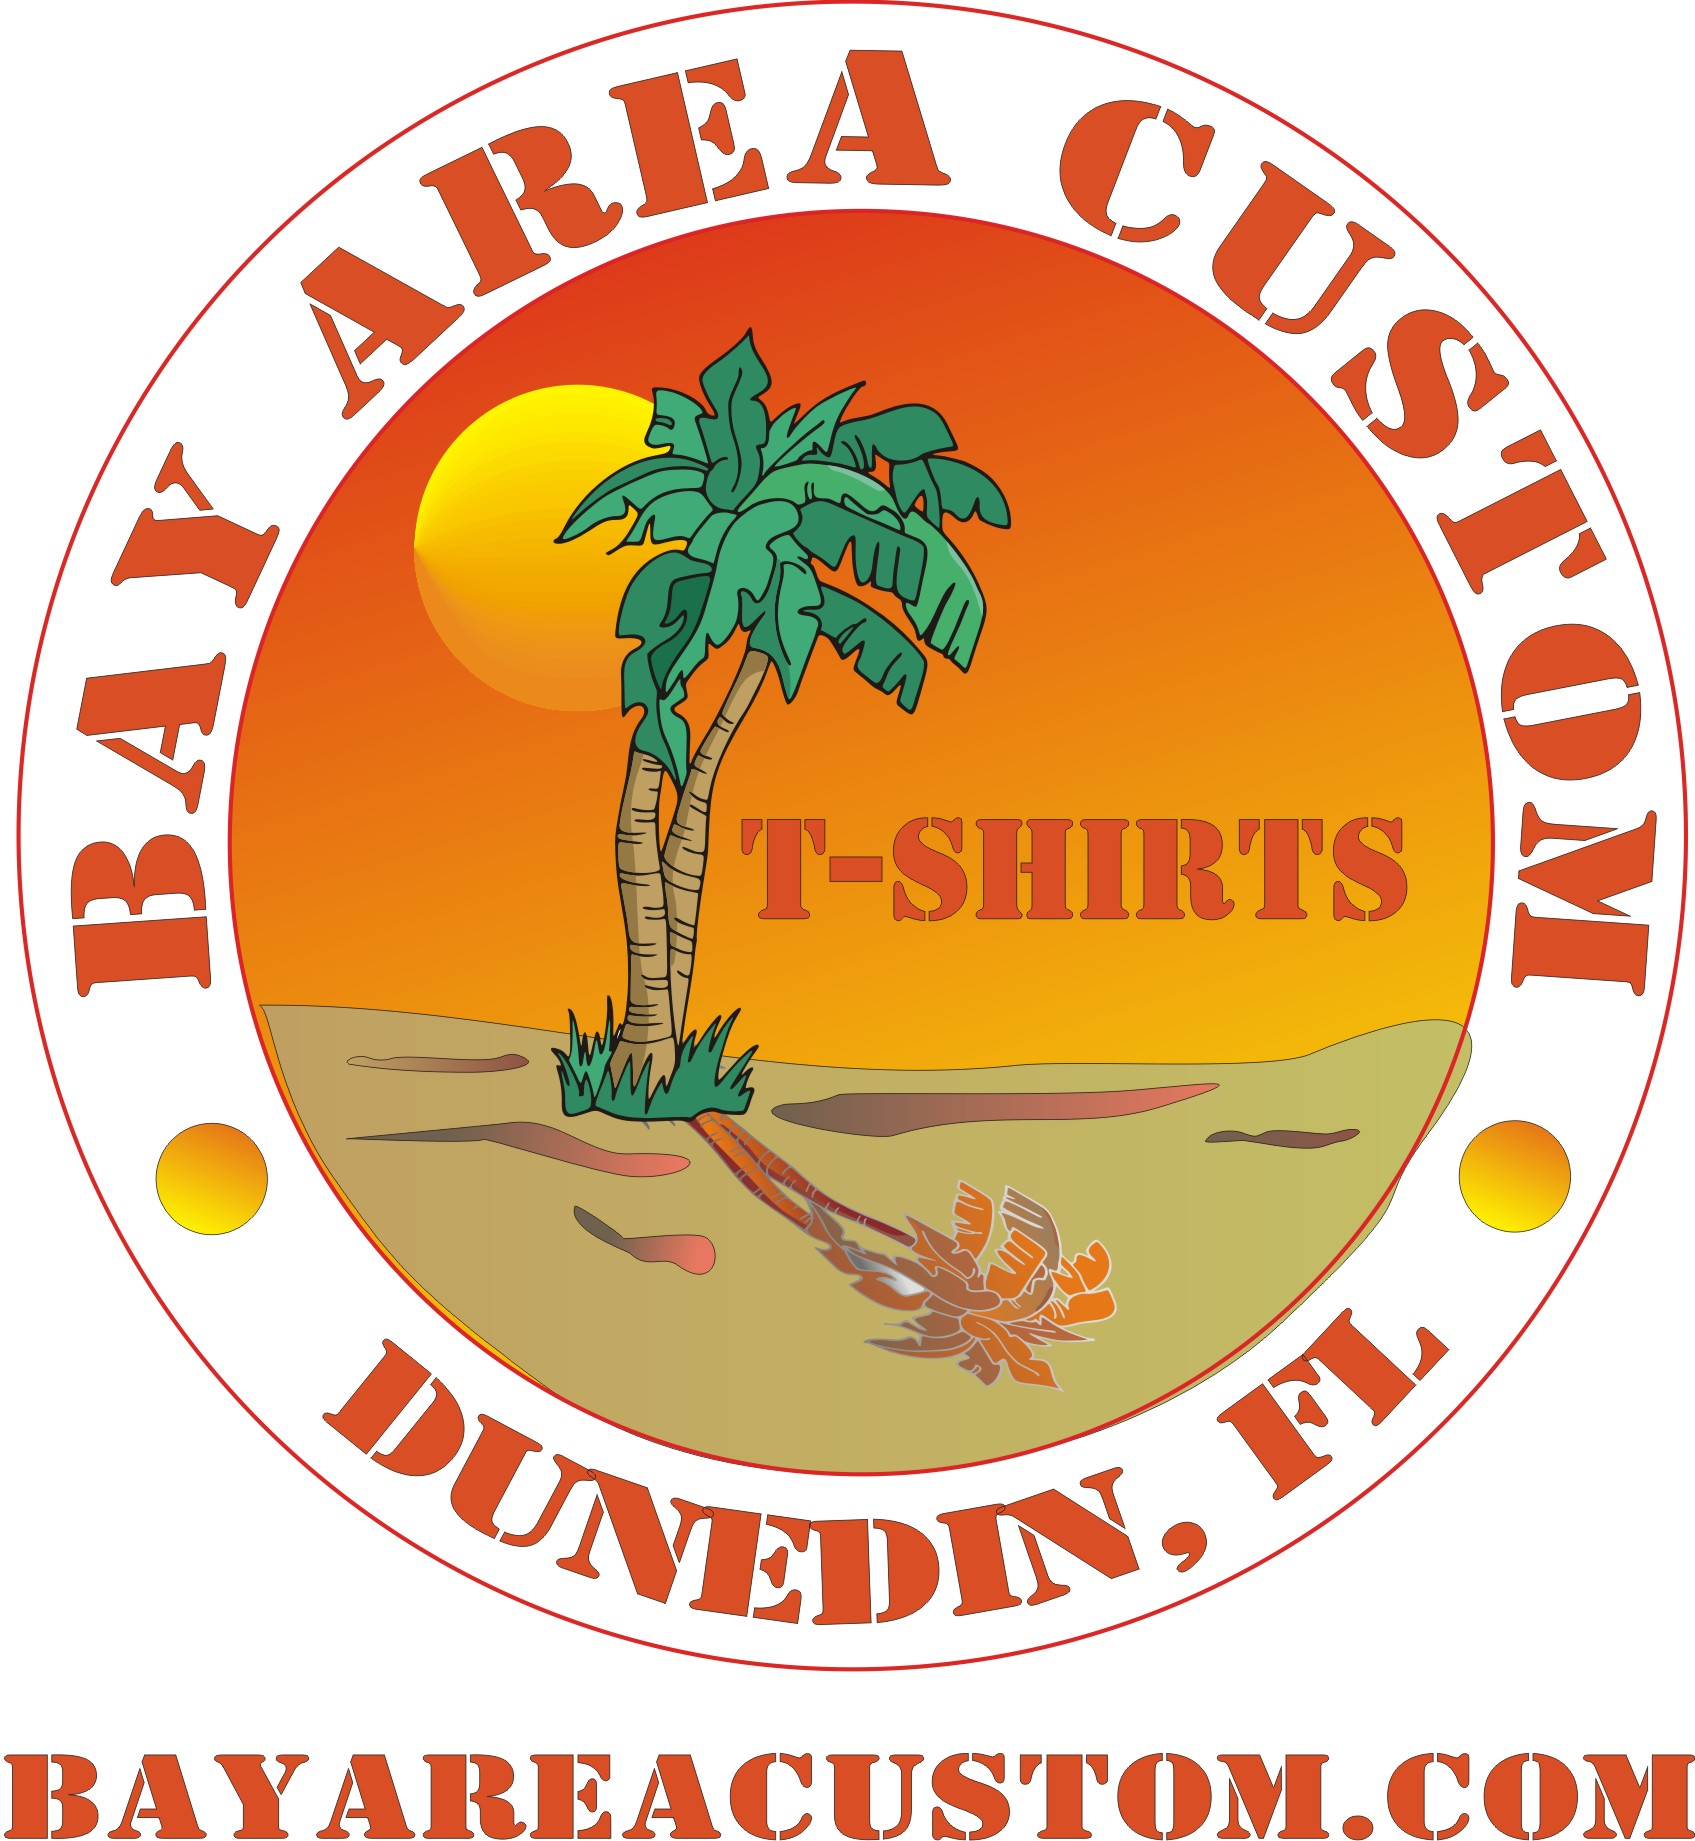 Bay Area Custom T-Shirts